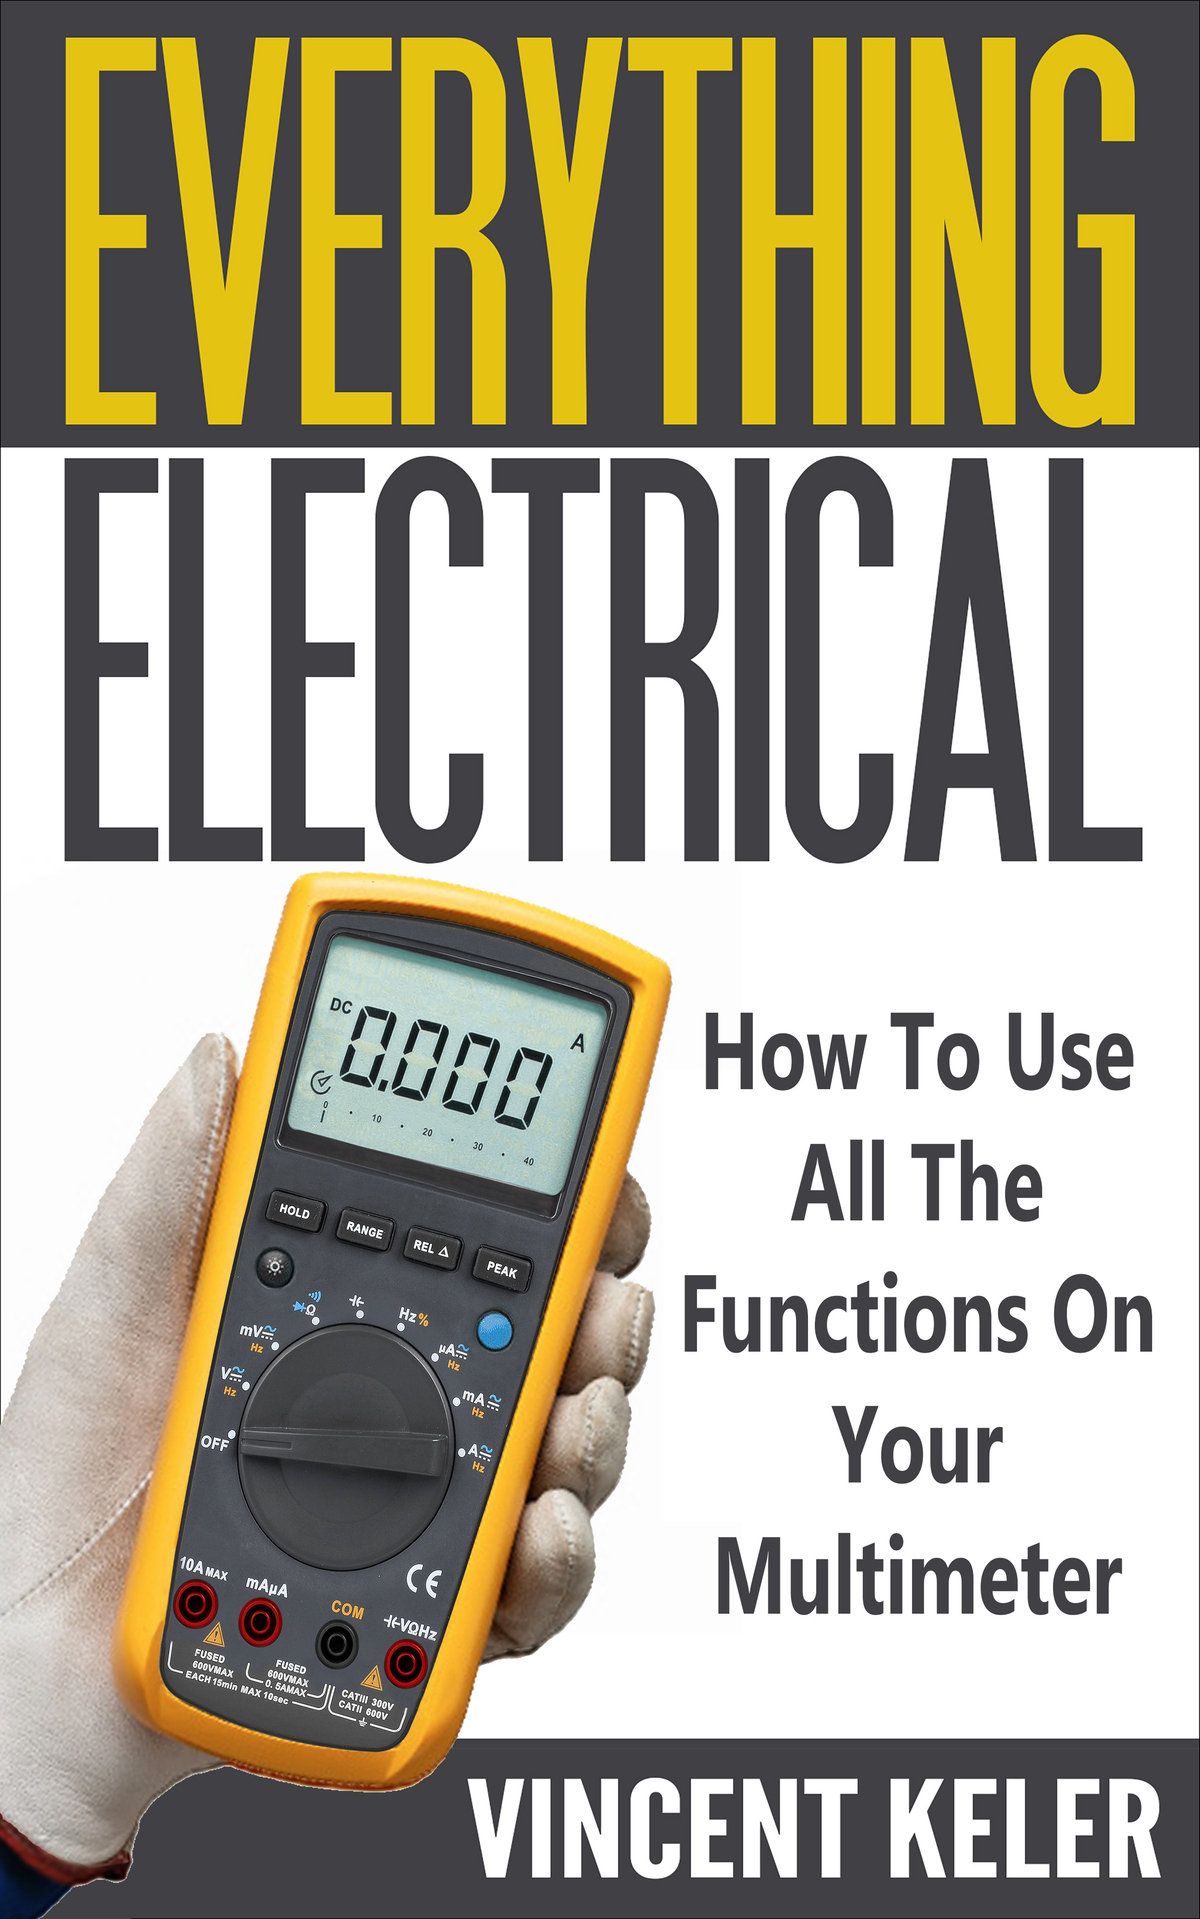 Everything Electrical: How To Use All The Functions On Your Multimeter-P2P